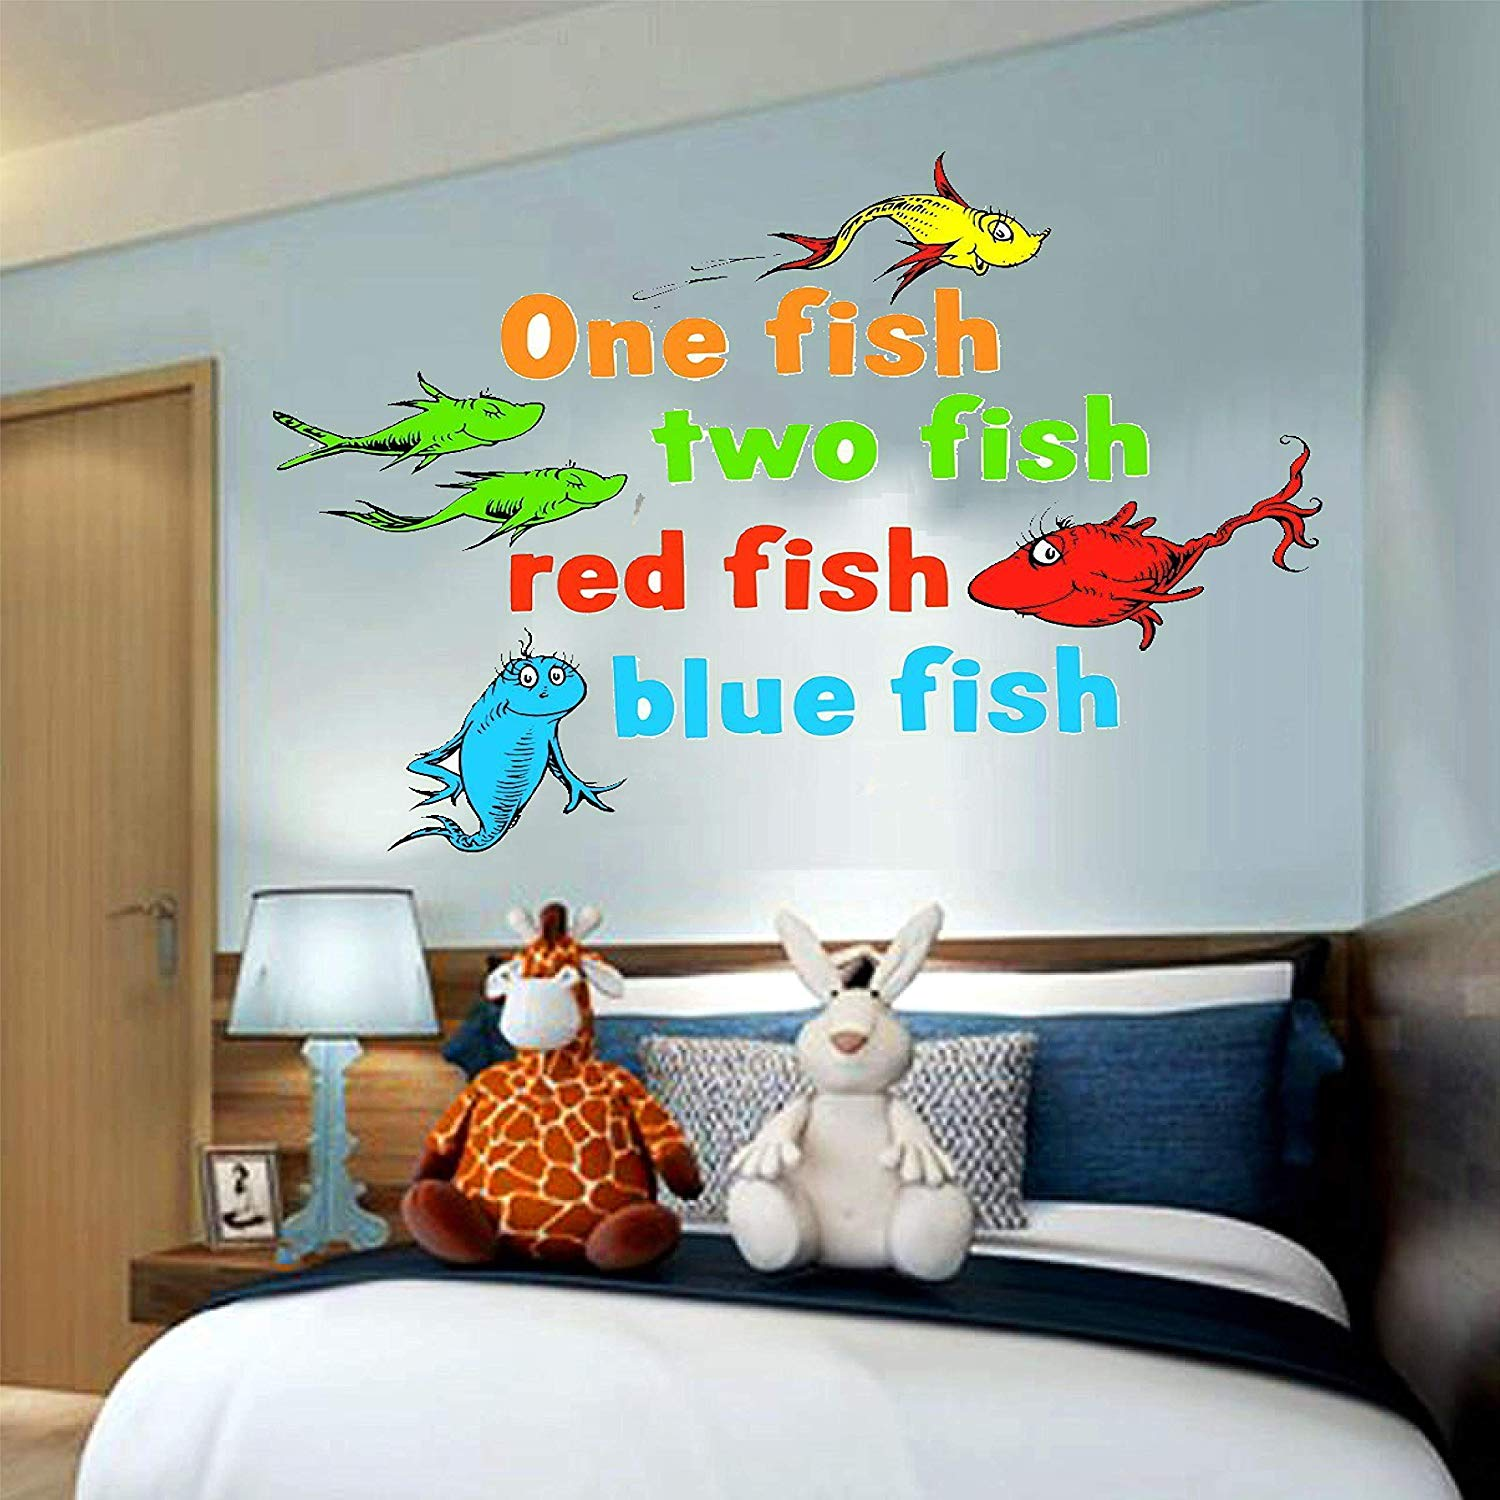 "One Fish Two Fish Dr. Seuss The Lorax, truffula tree, 3D Window View Decal Graphic WALL STICKER Art Mural 18"", 24"", 36"" or 52"""